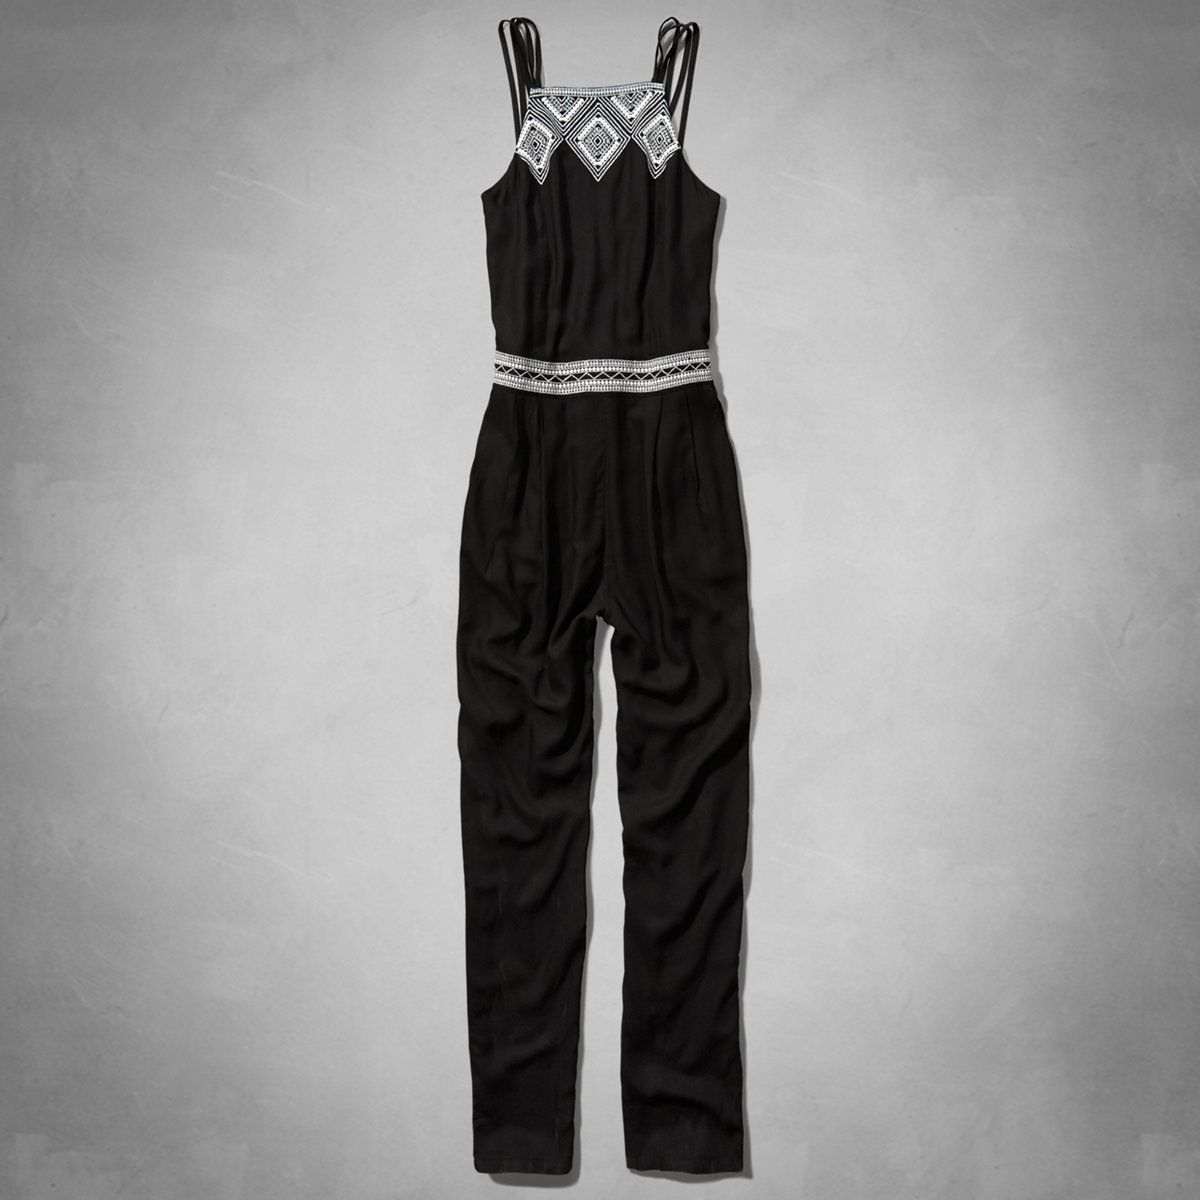 Womens Embroidered Strappy Jumpsuit | Supersoft and drapey jumpsuit with an easy slim fit, strappy detailing and embroidery at waist and neckline | Abercrombie.com